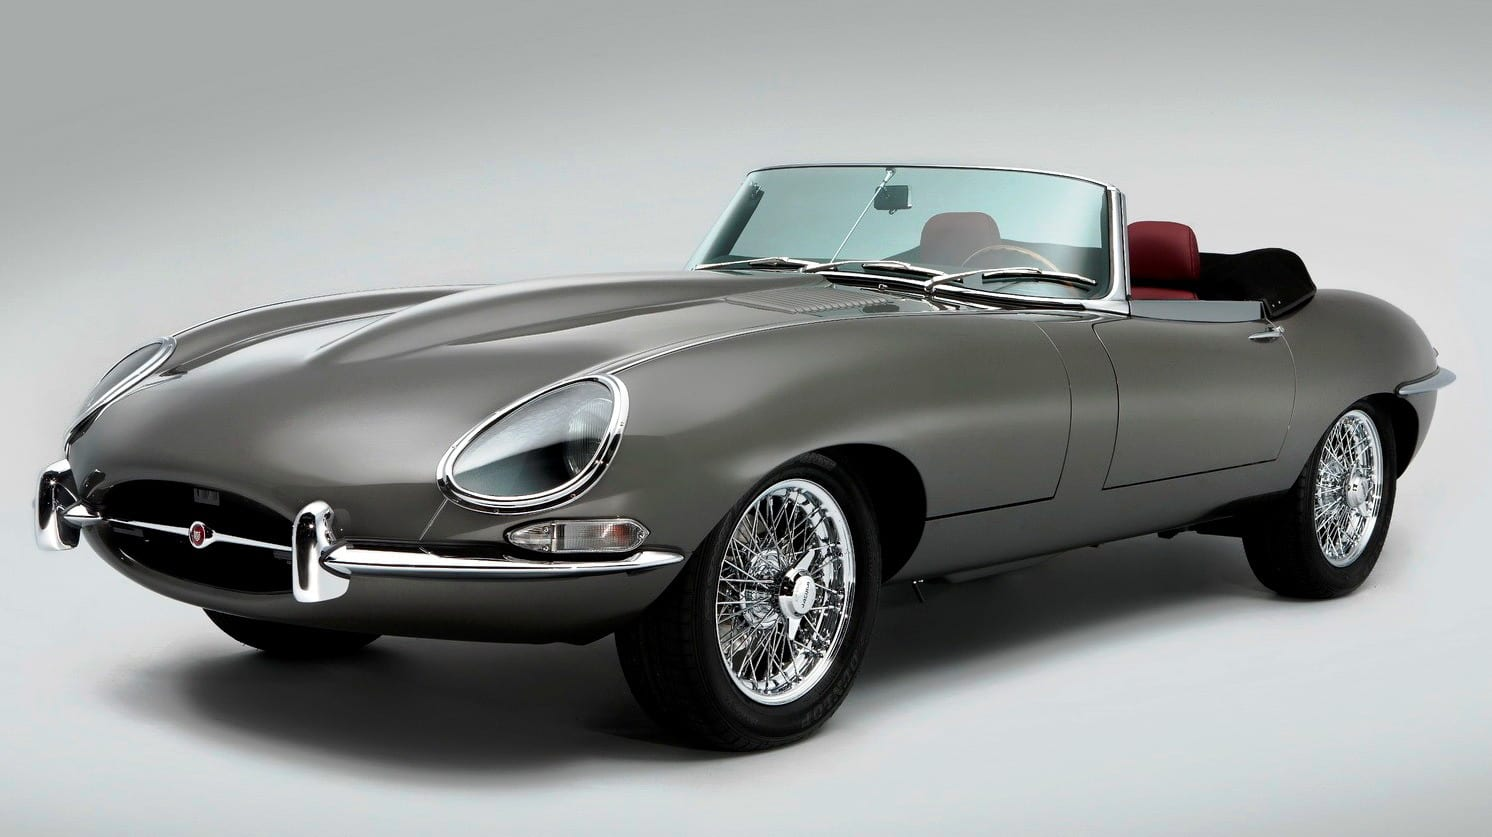 Jaguar E-type roadster de 1968